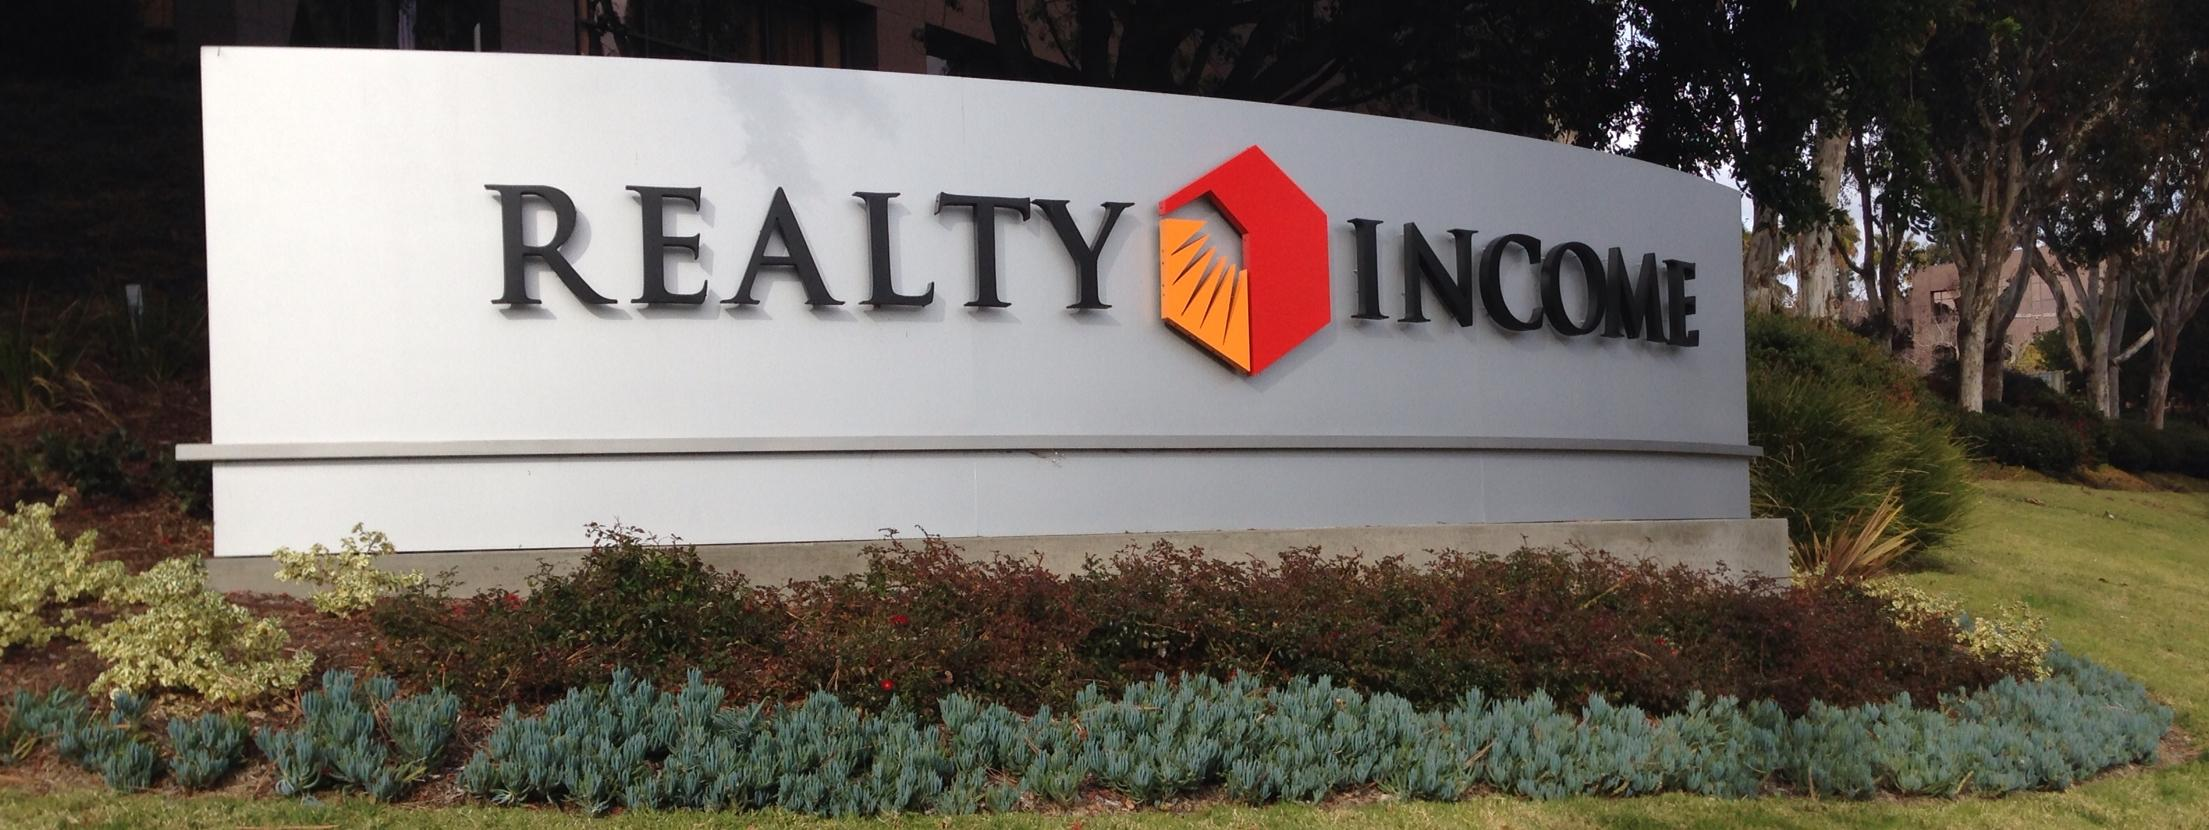 The Market Has Realty Income About Right Realty Income Corporation